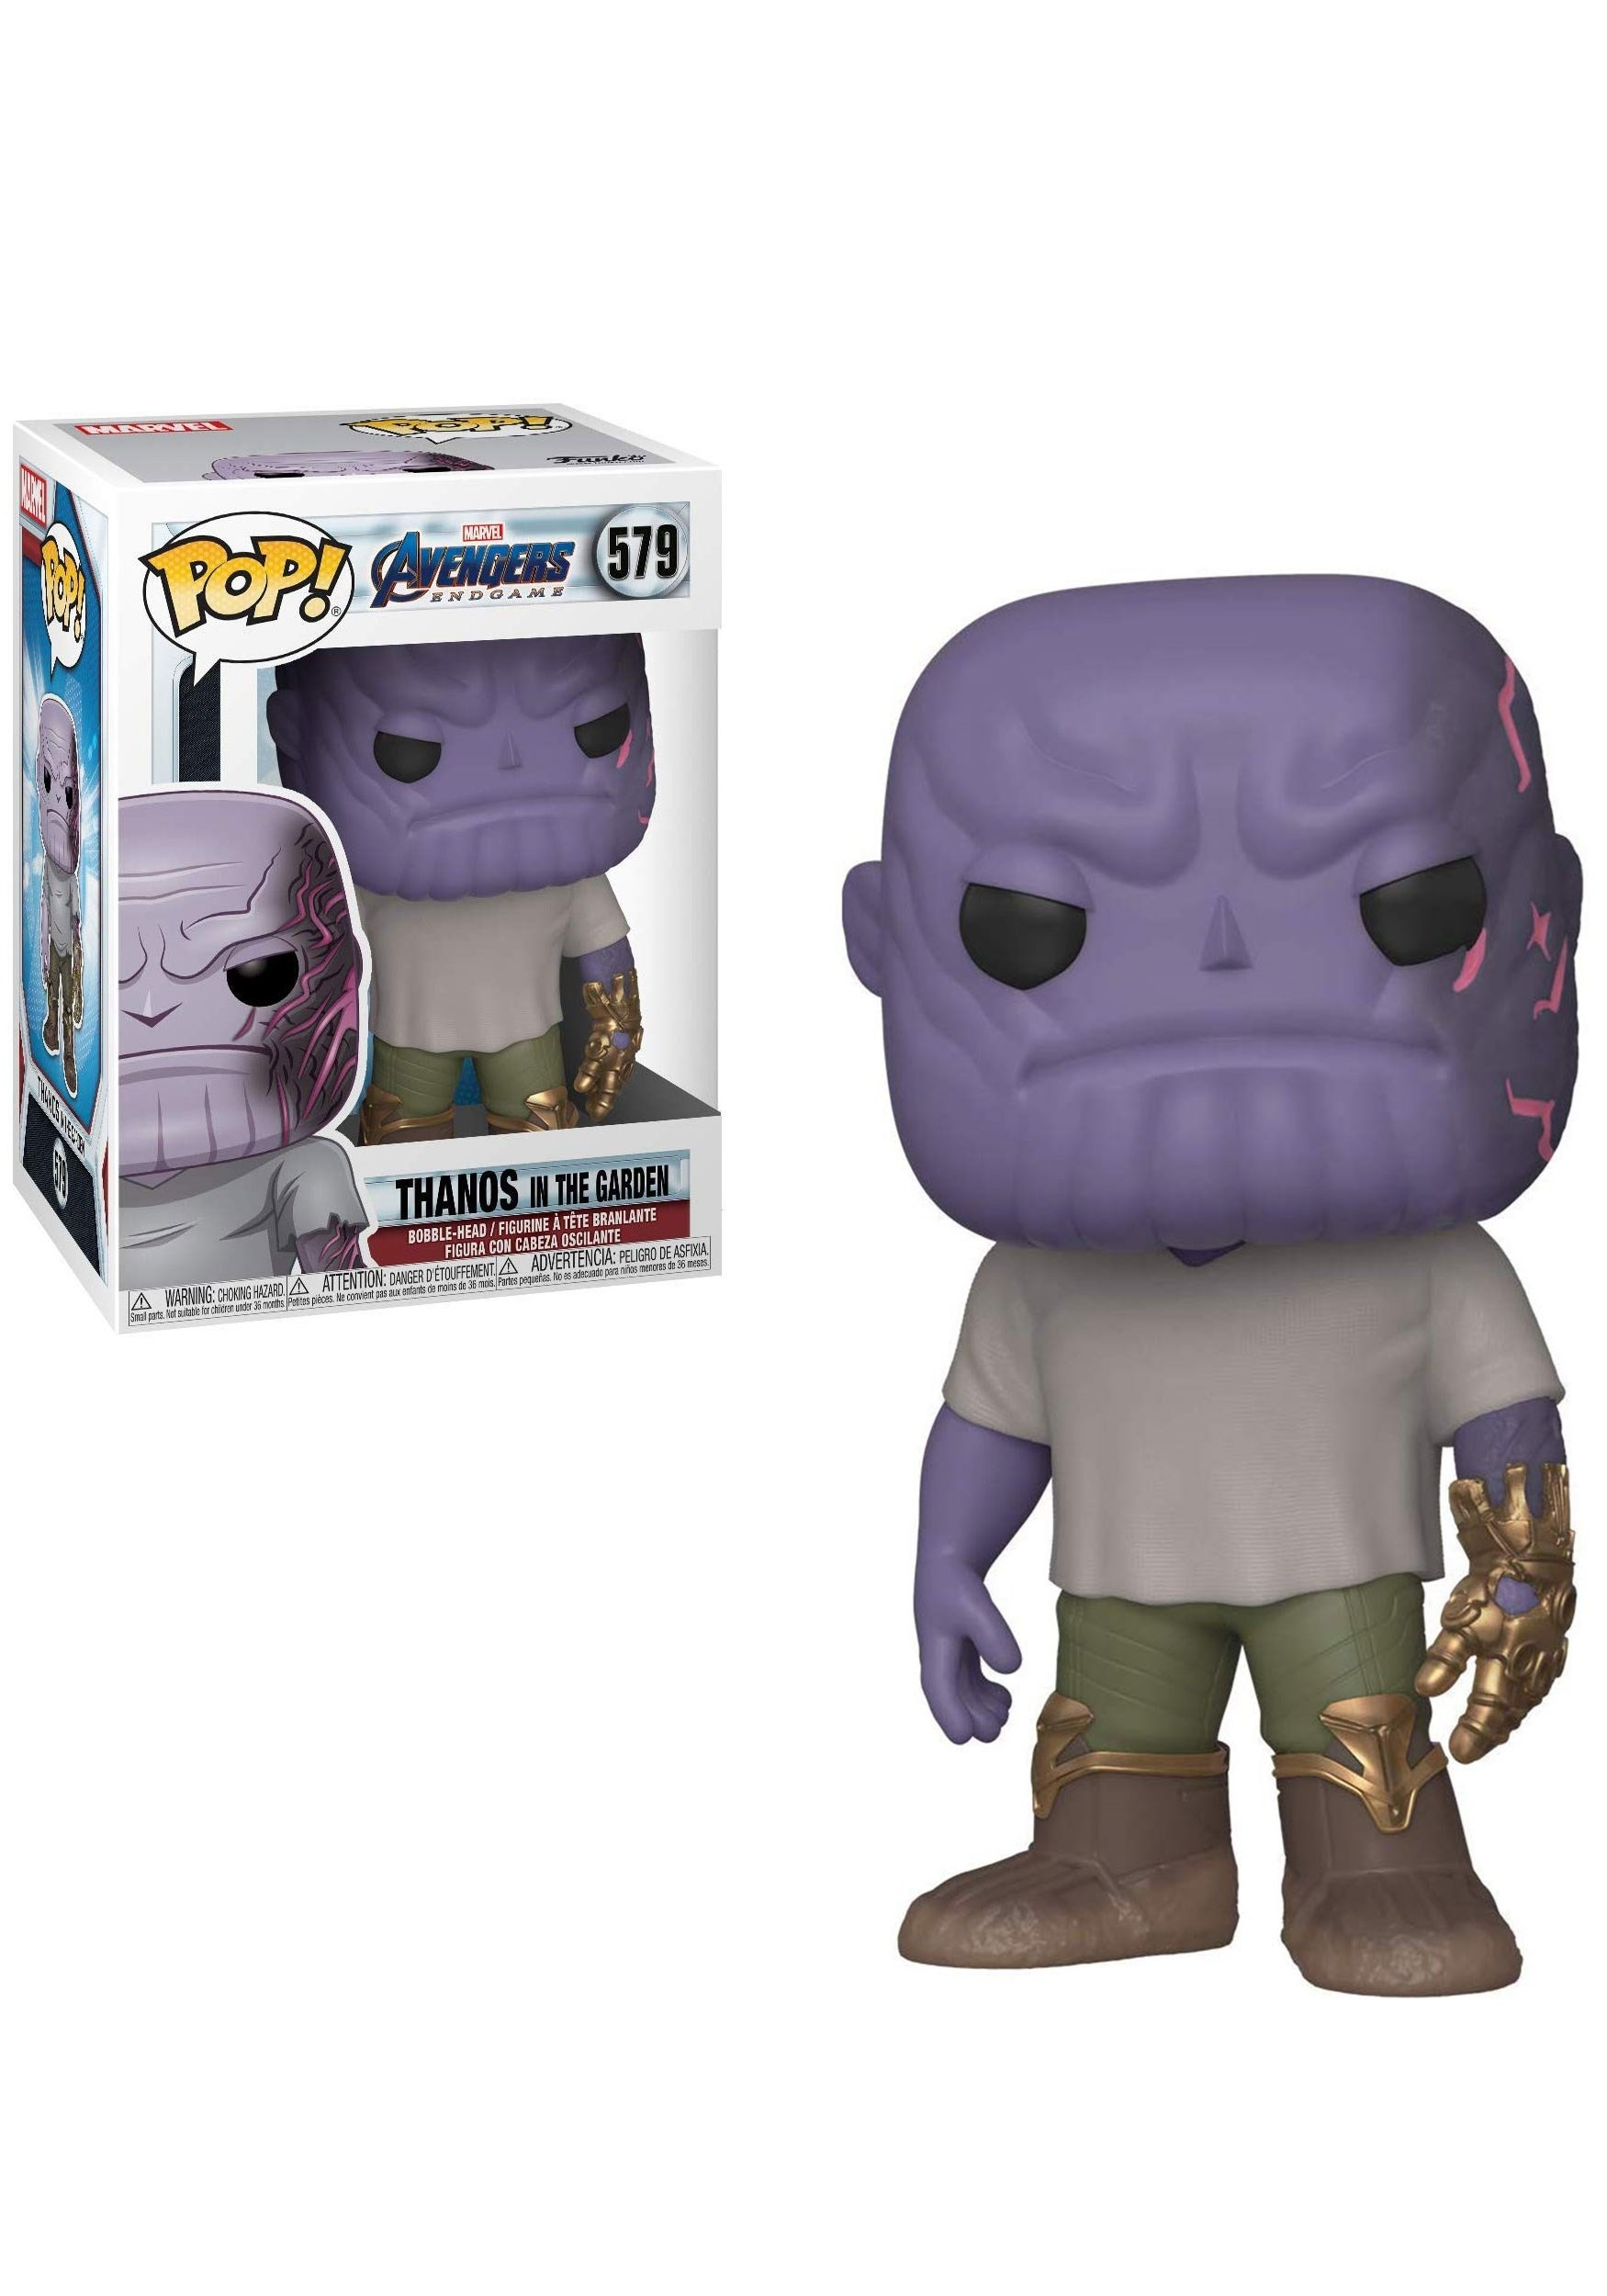 Marvel: Endgame - Funko Pop! Casual Thanos with Gauntlet